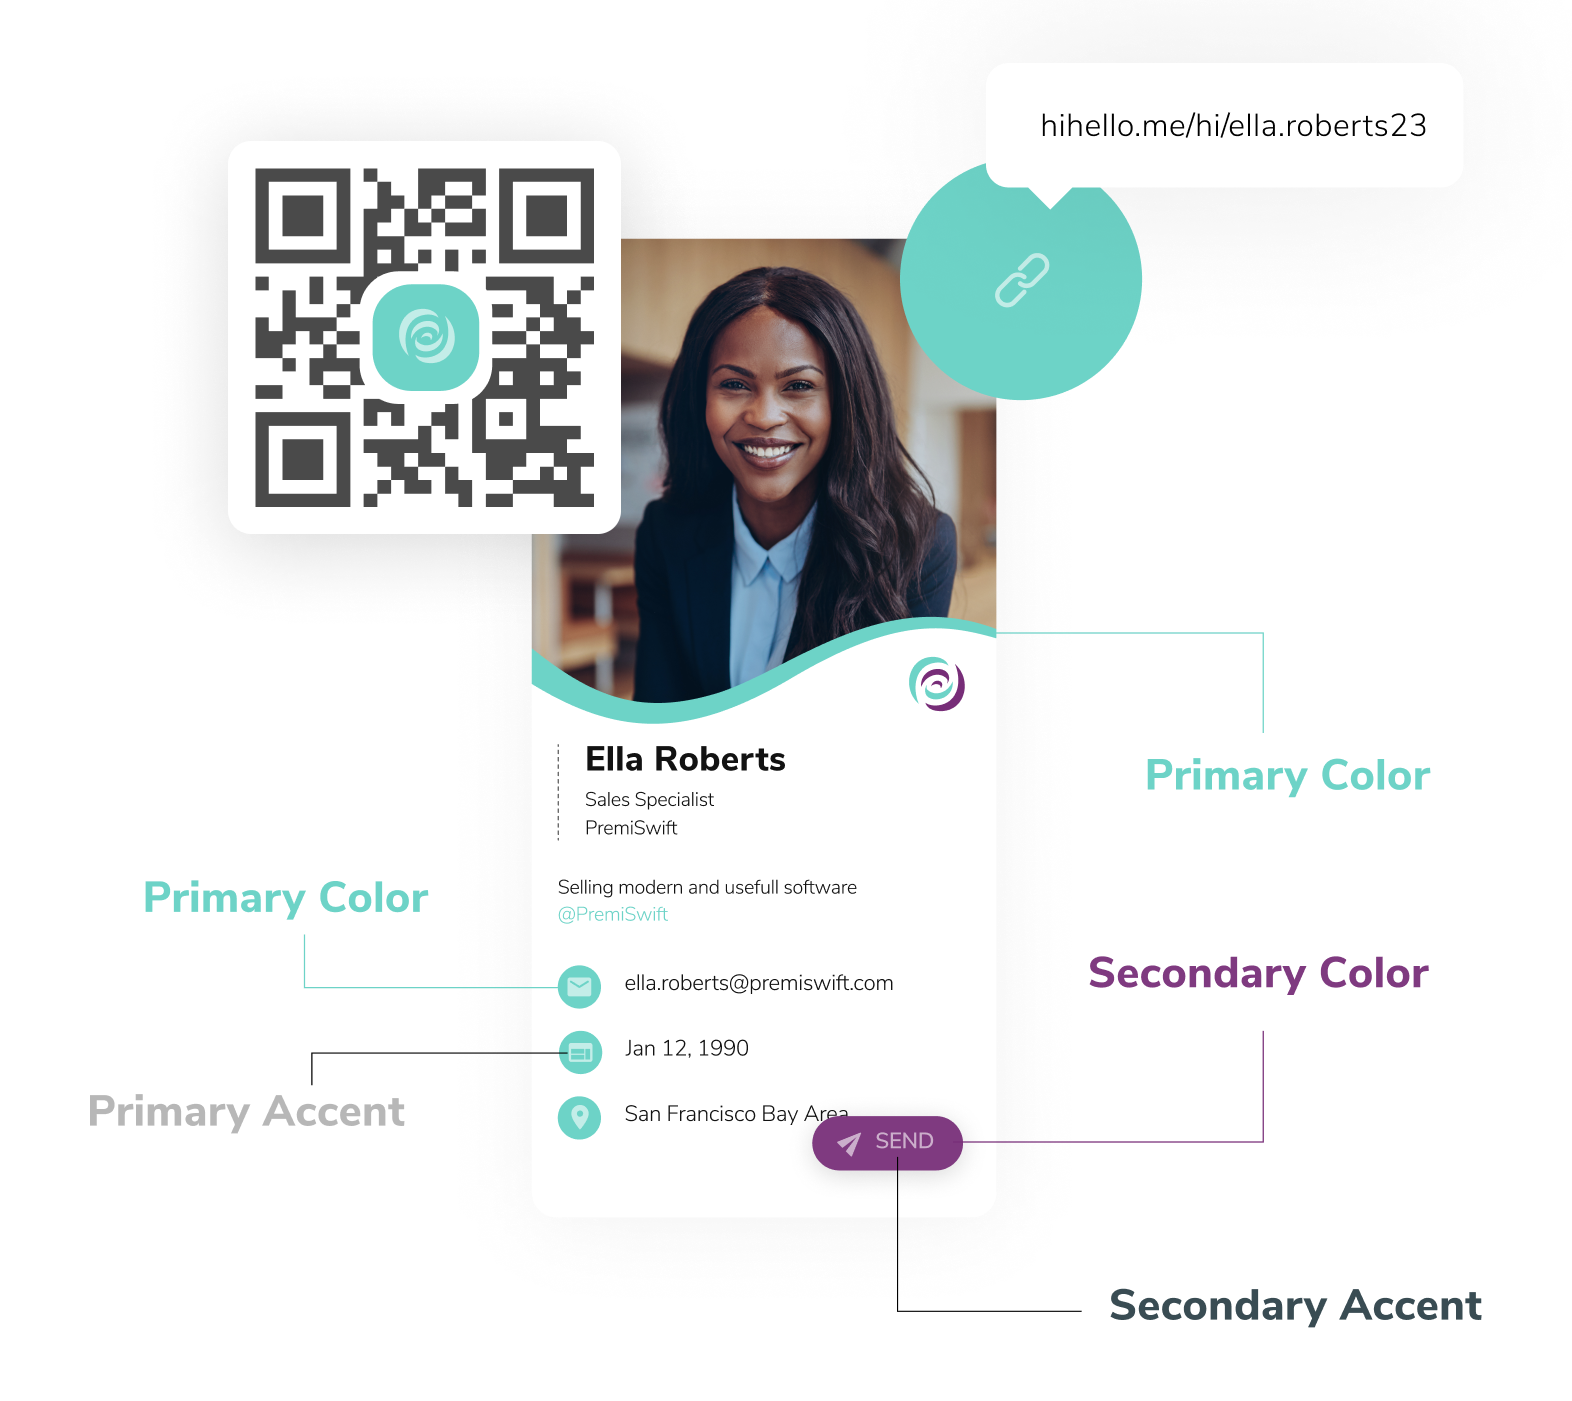 HiHello Professional is a premium digital business card plan for individuals.